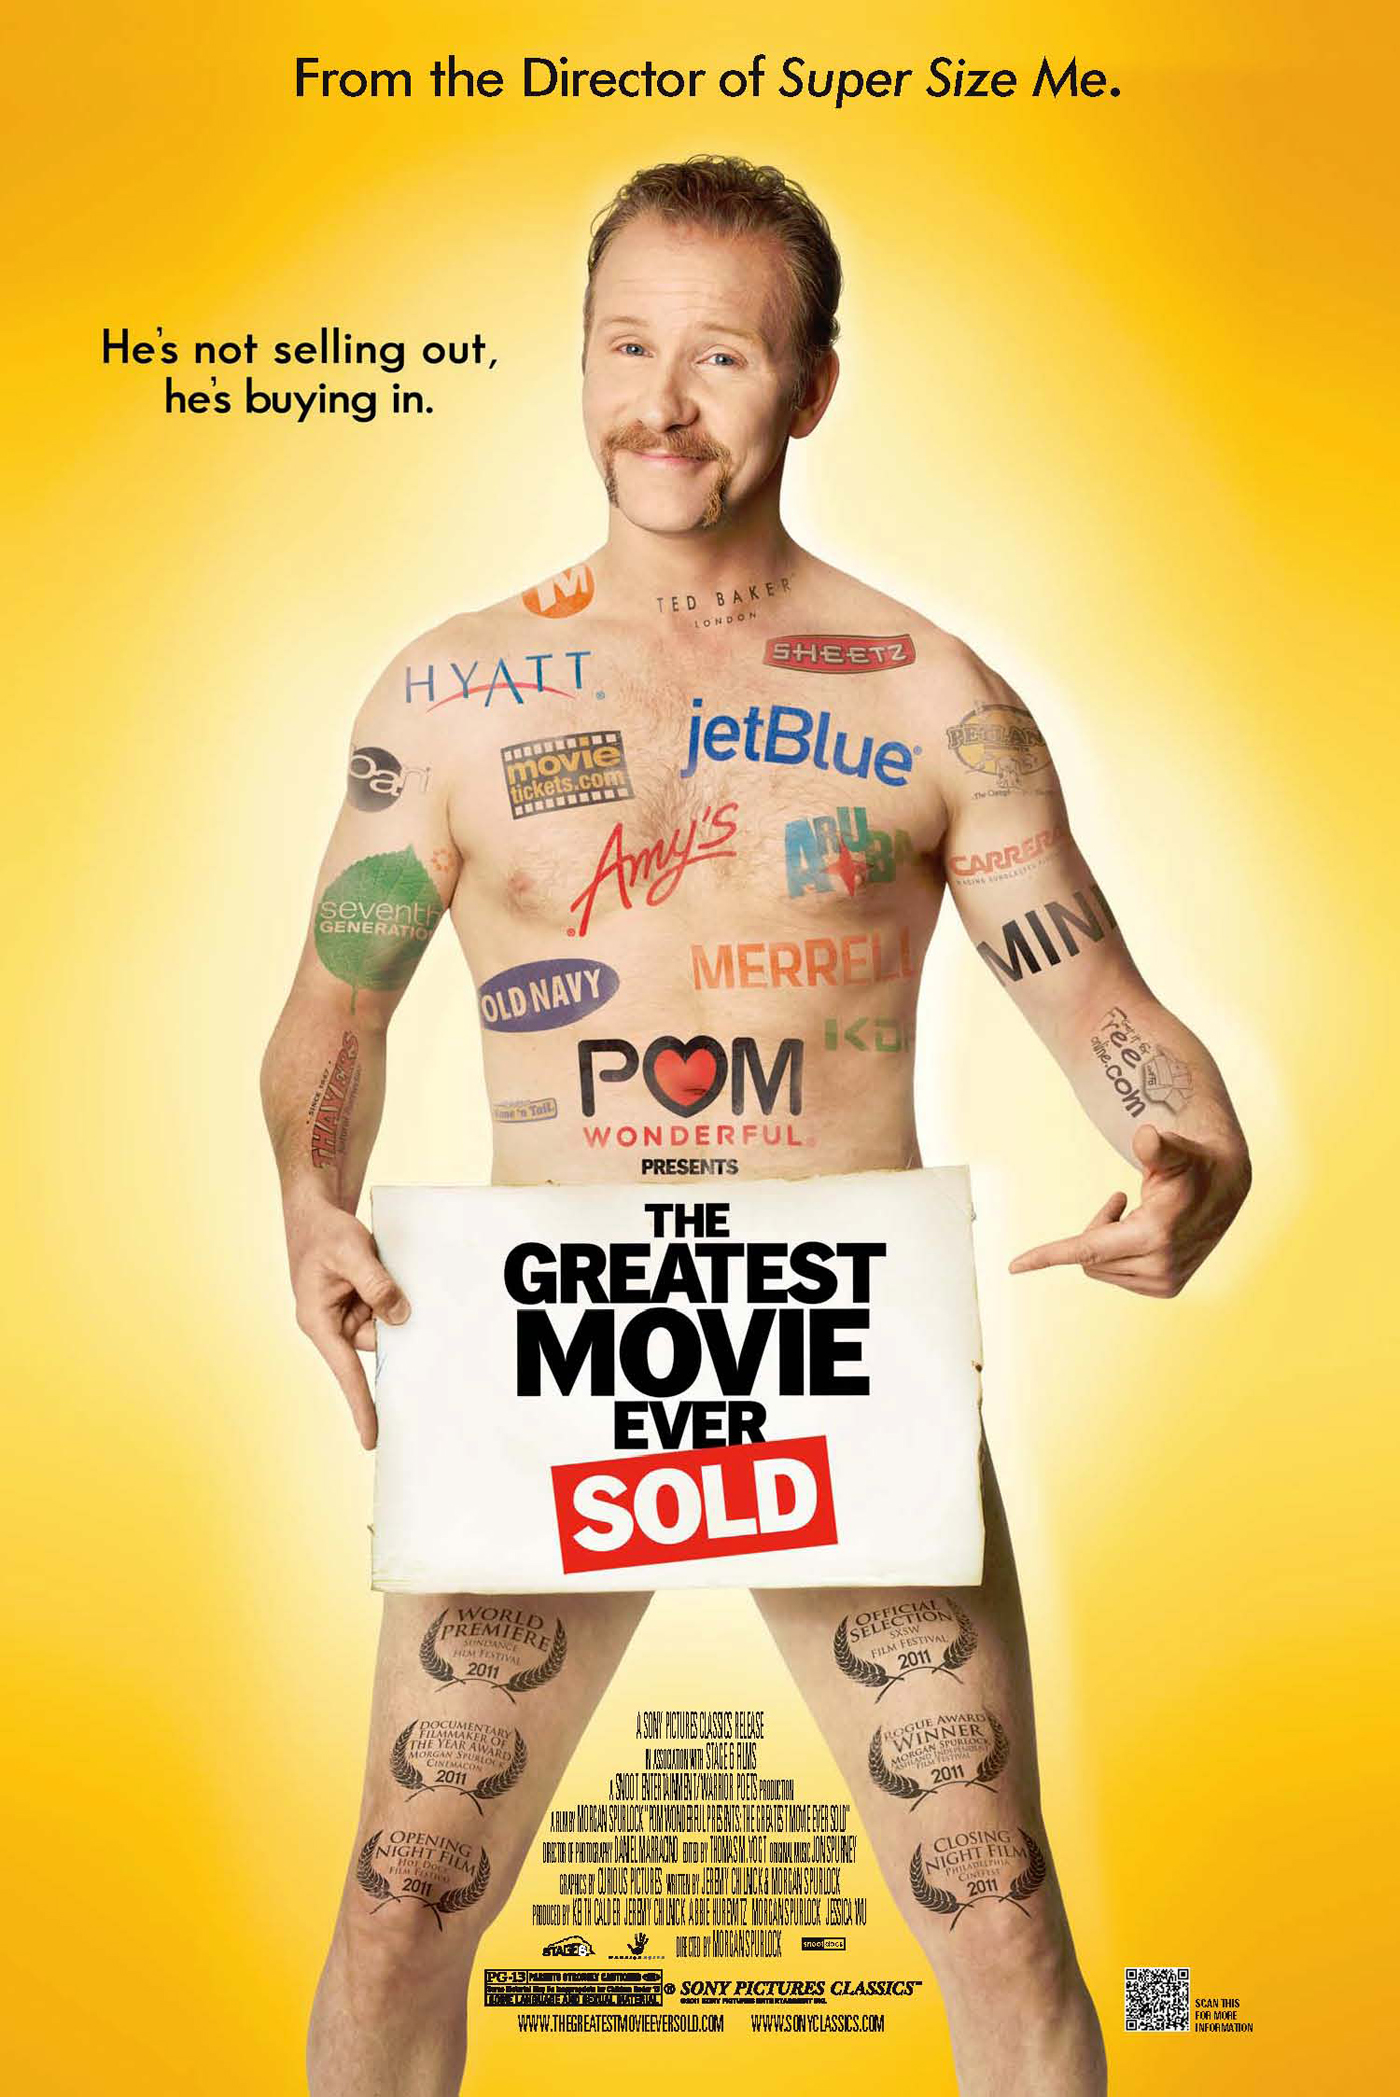 pom wonderful presents the greatest movie ever sold the